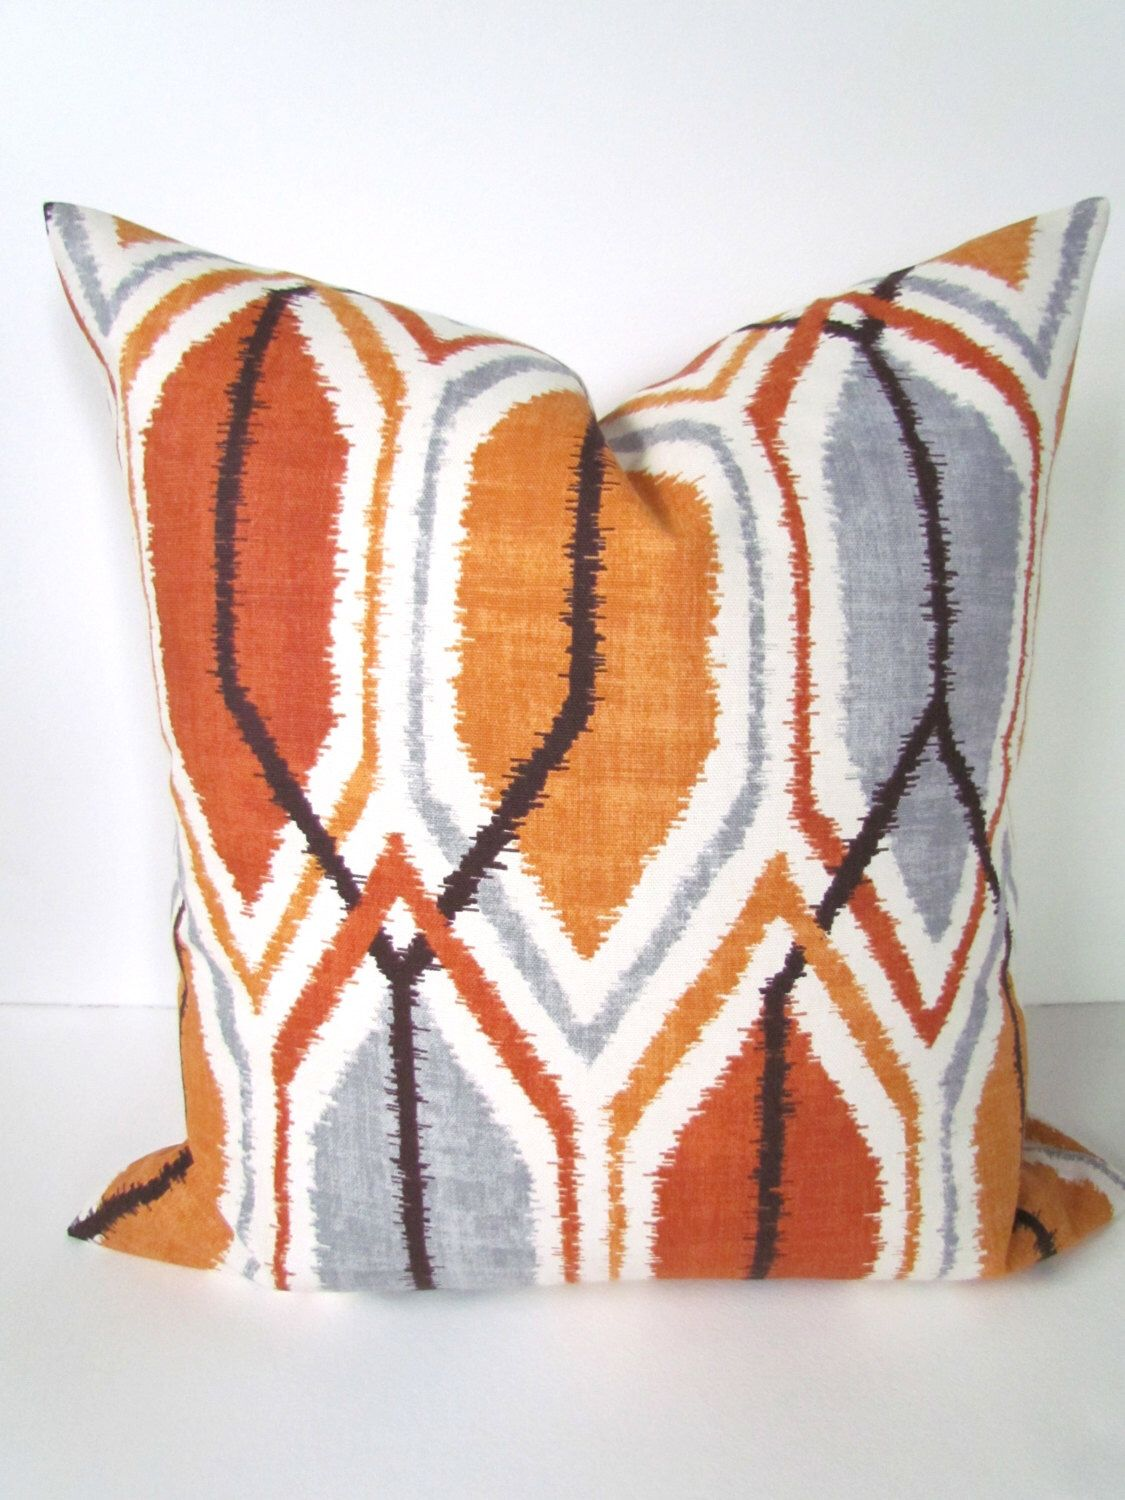 Pin by Cindy P on Home | Orange throw pillows, Living room ...